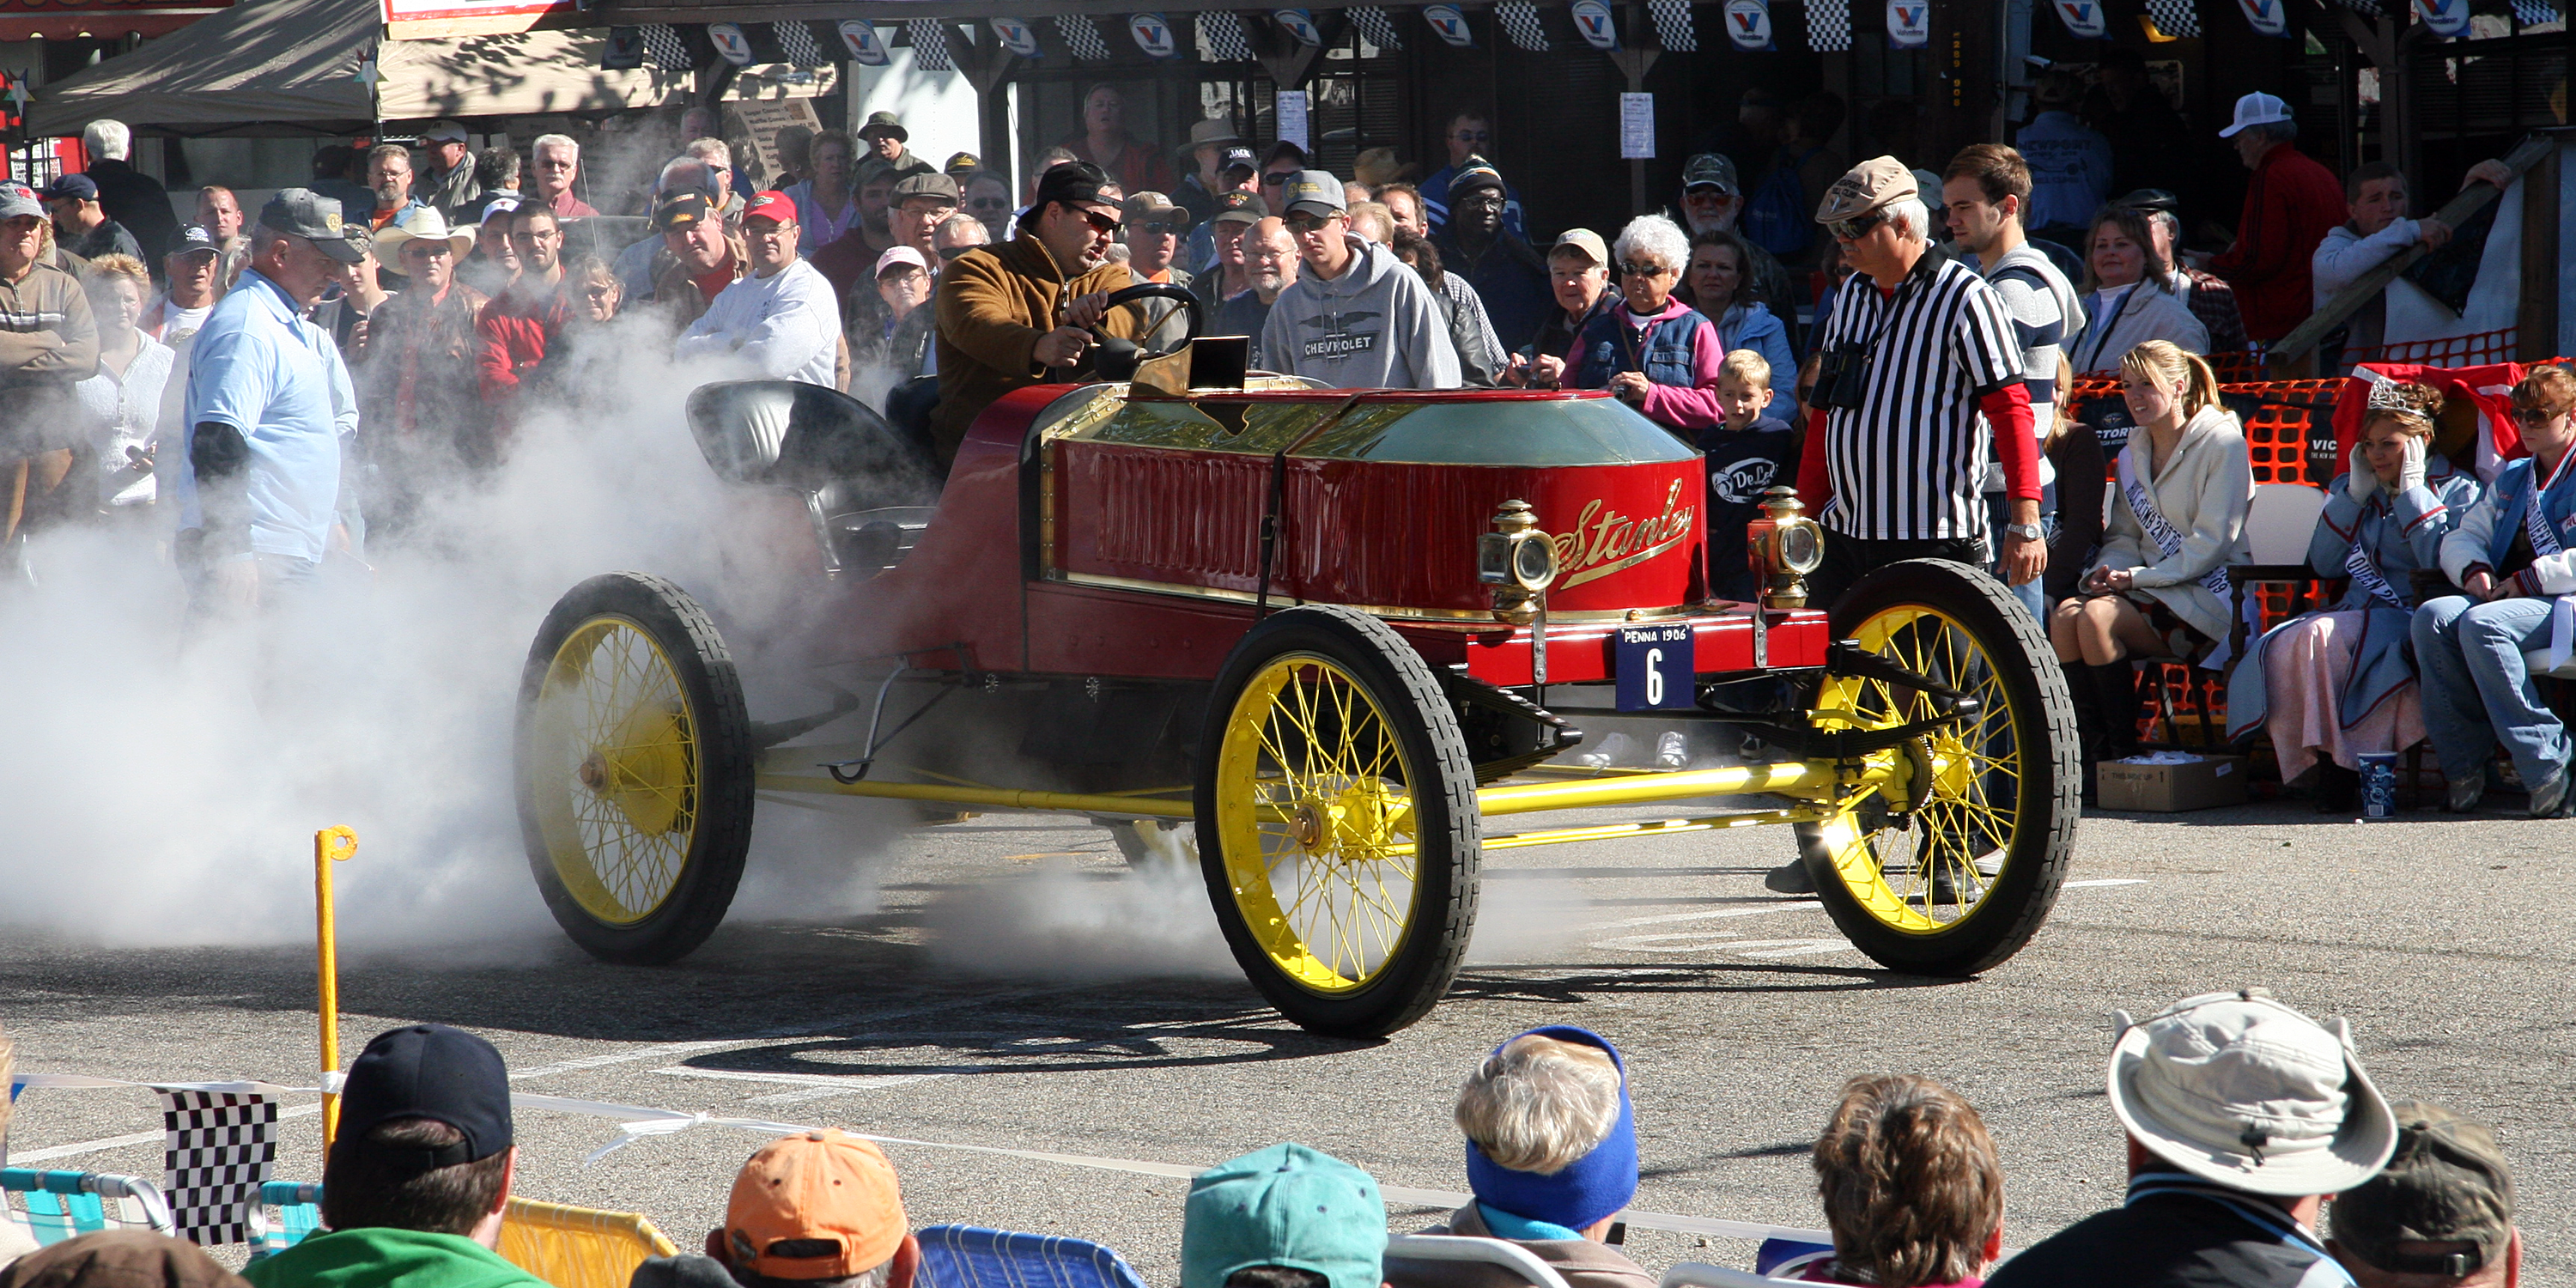 Stanley Steamer Car >> File:Stanley Steamer at 2009 Newport Hill Climb 1.png - Wikimedia Commons